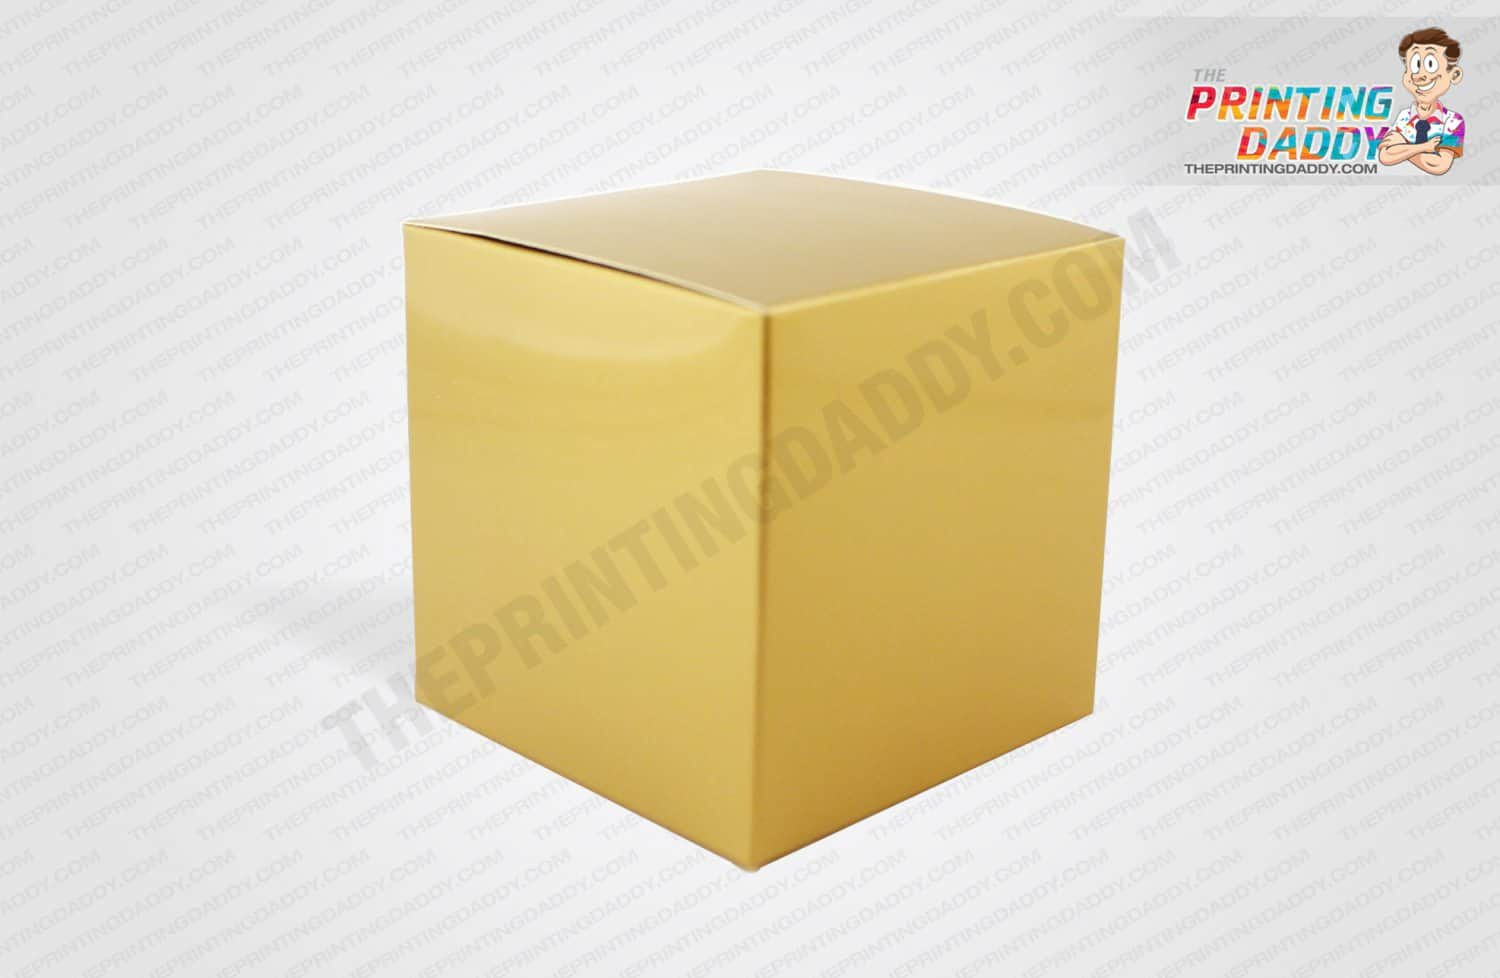 Gold Foil Boxes with Lids The Printing Daddy